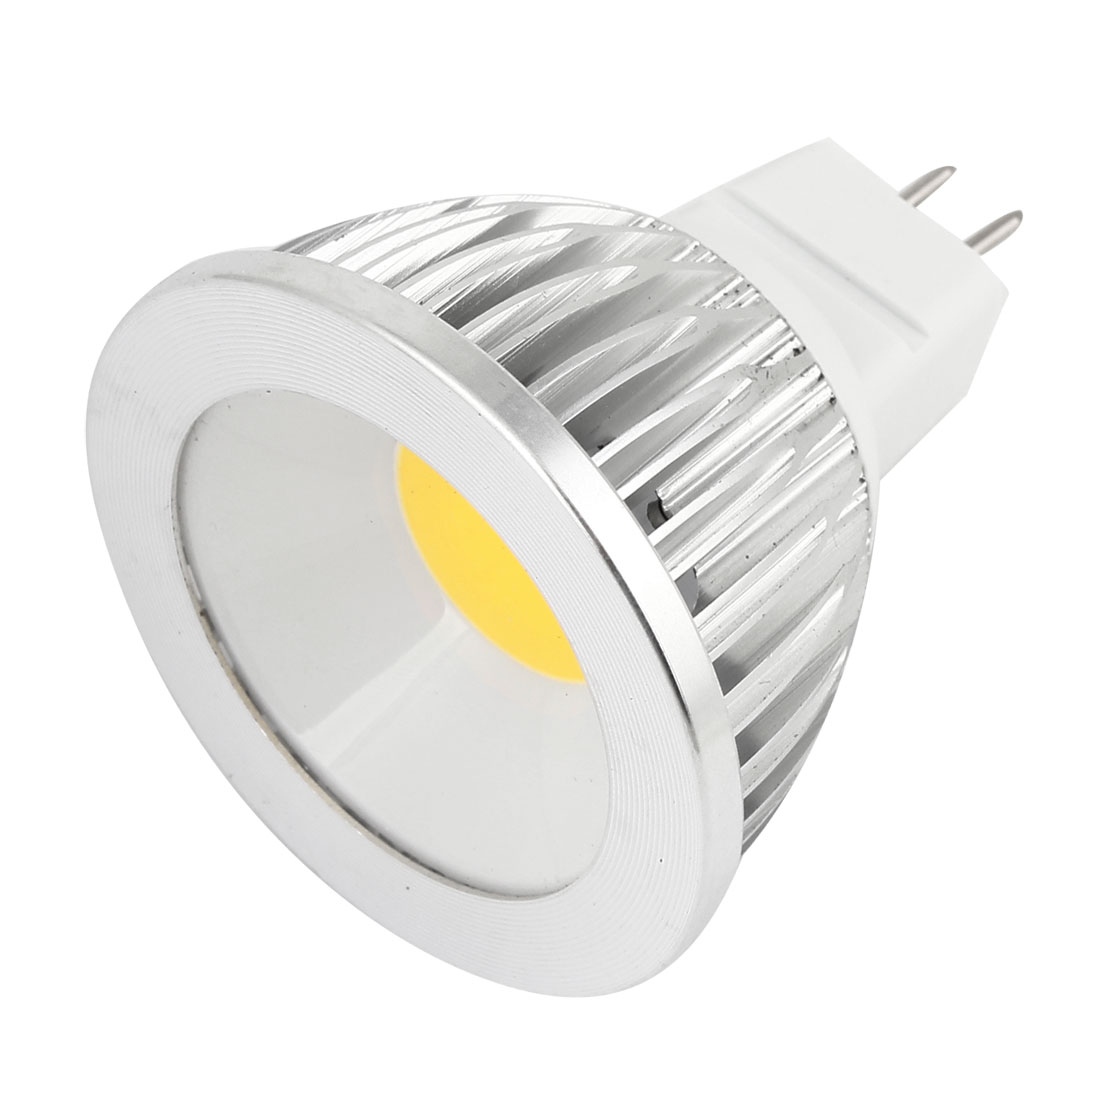 AC 12V 6W MR16 Non-dimmable Warm White Light COB LED Downlight Spotlight